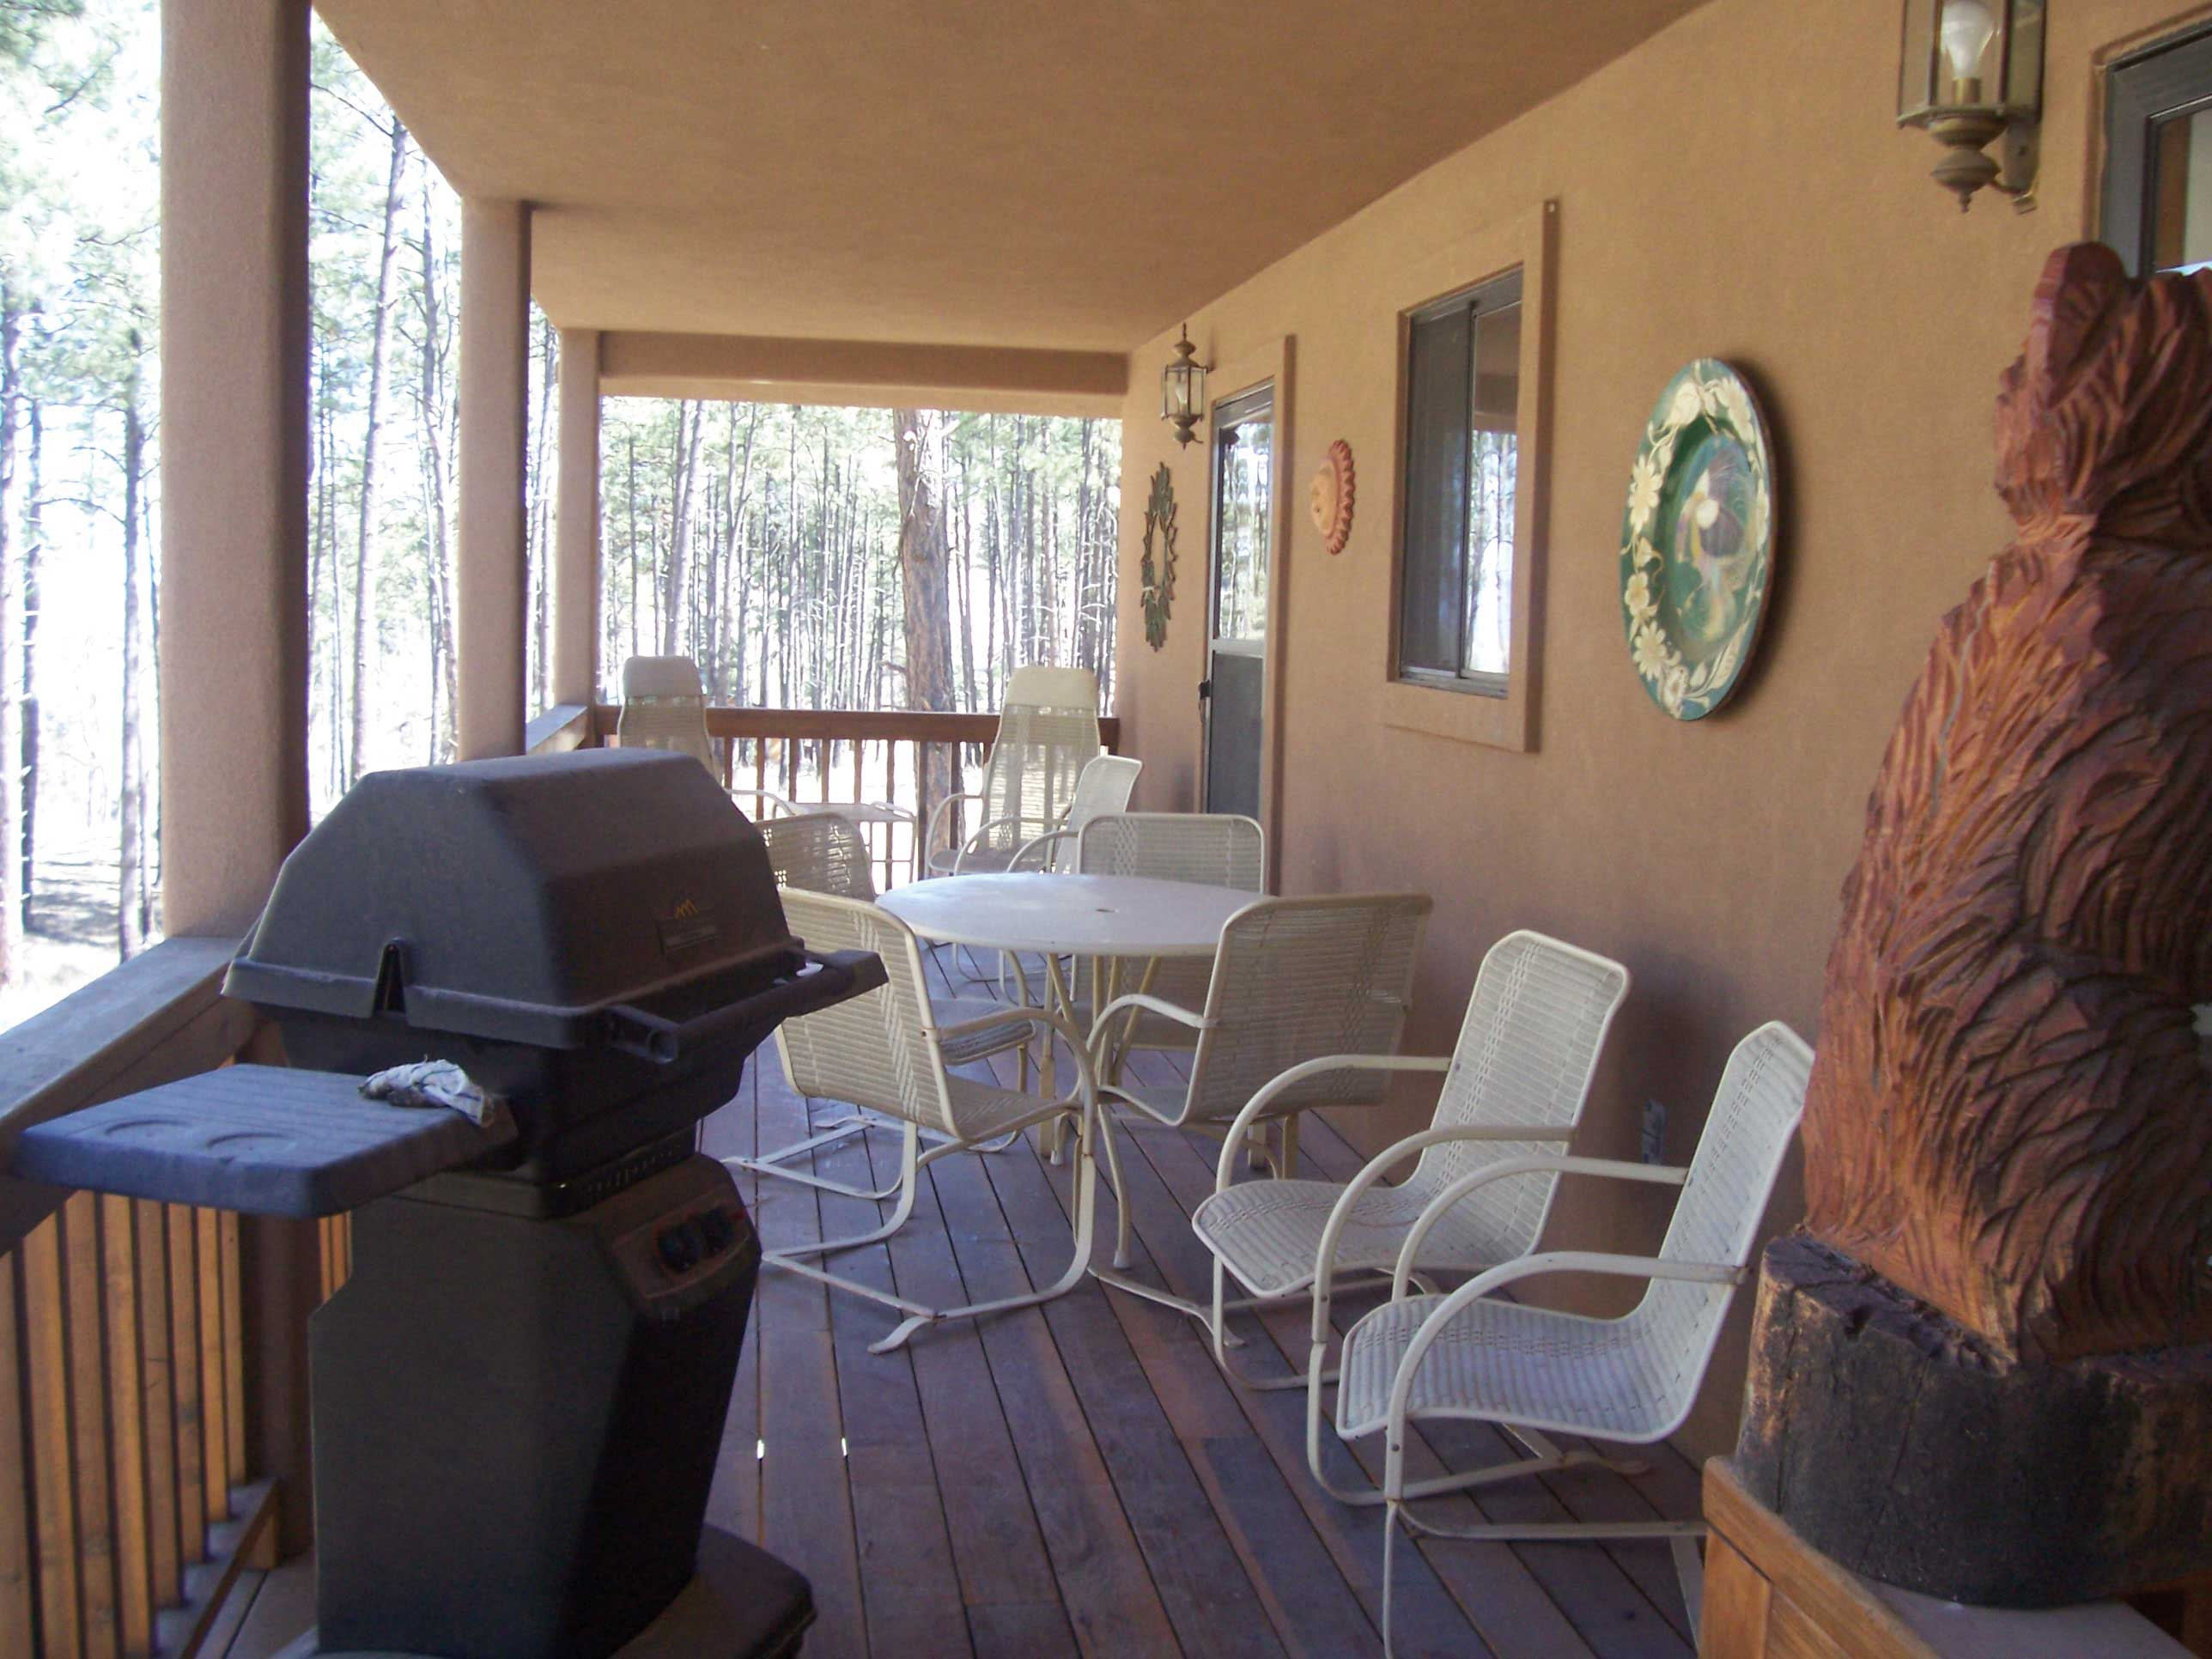 home decoration cabins springs stylish rental cabin steamboat with ideas ruidoso inspirational on decorating designing